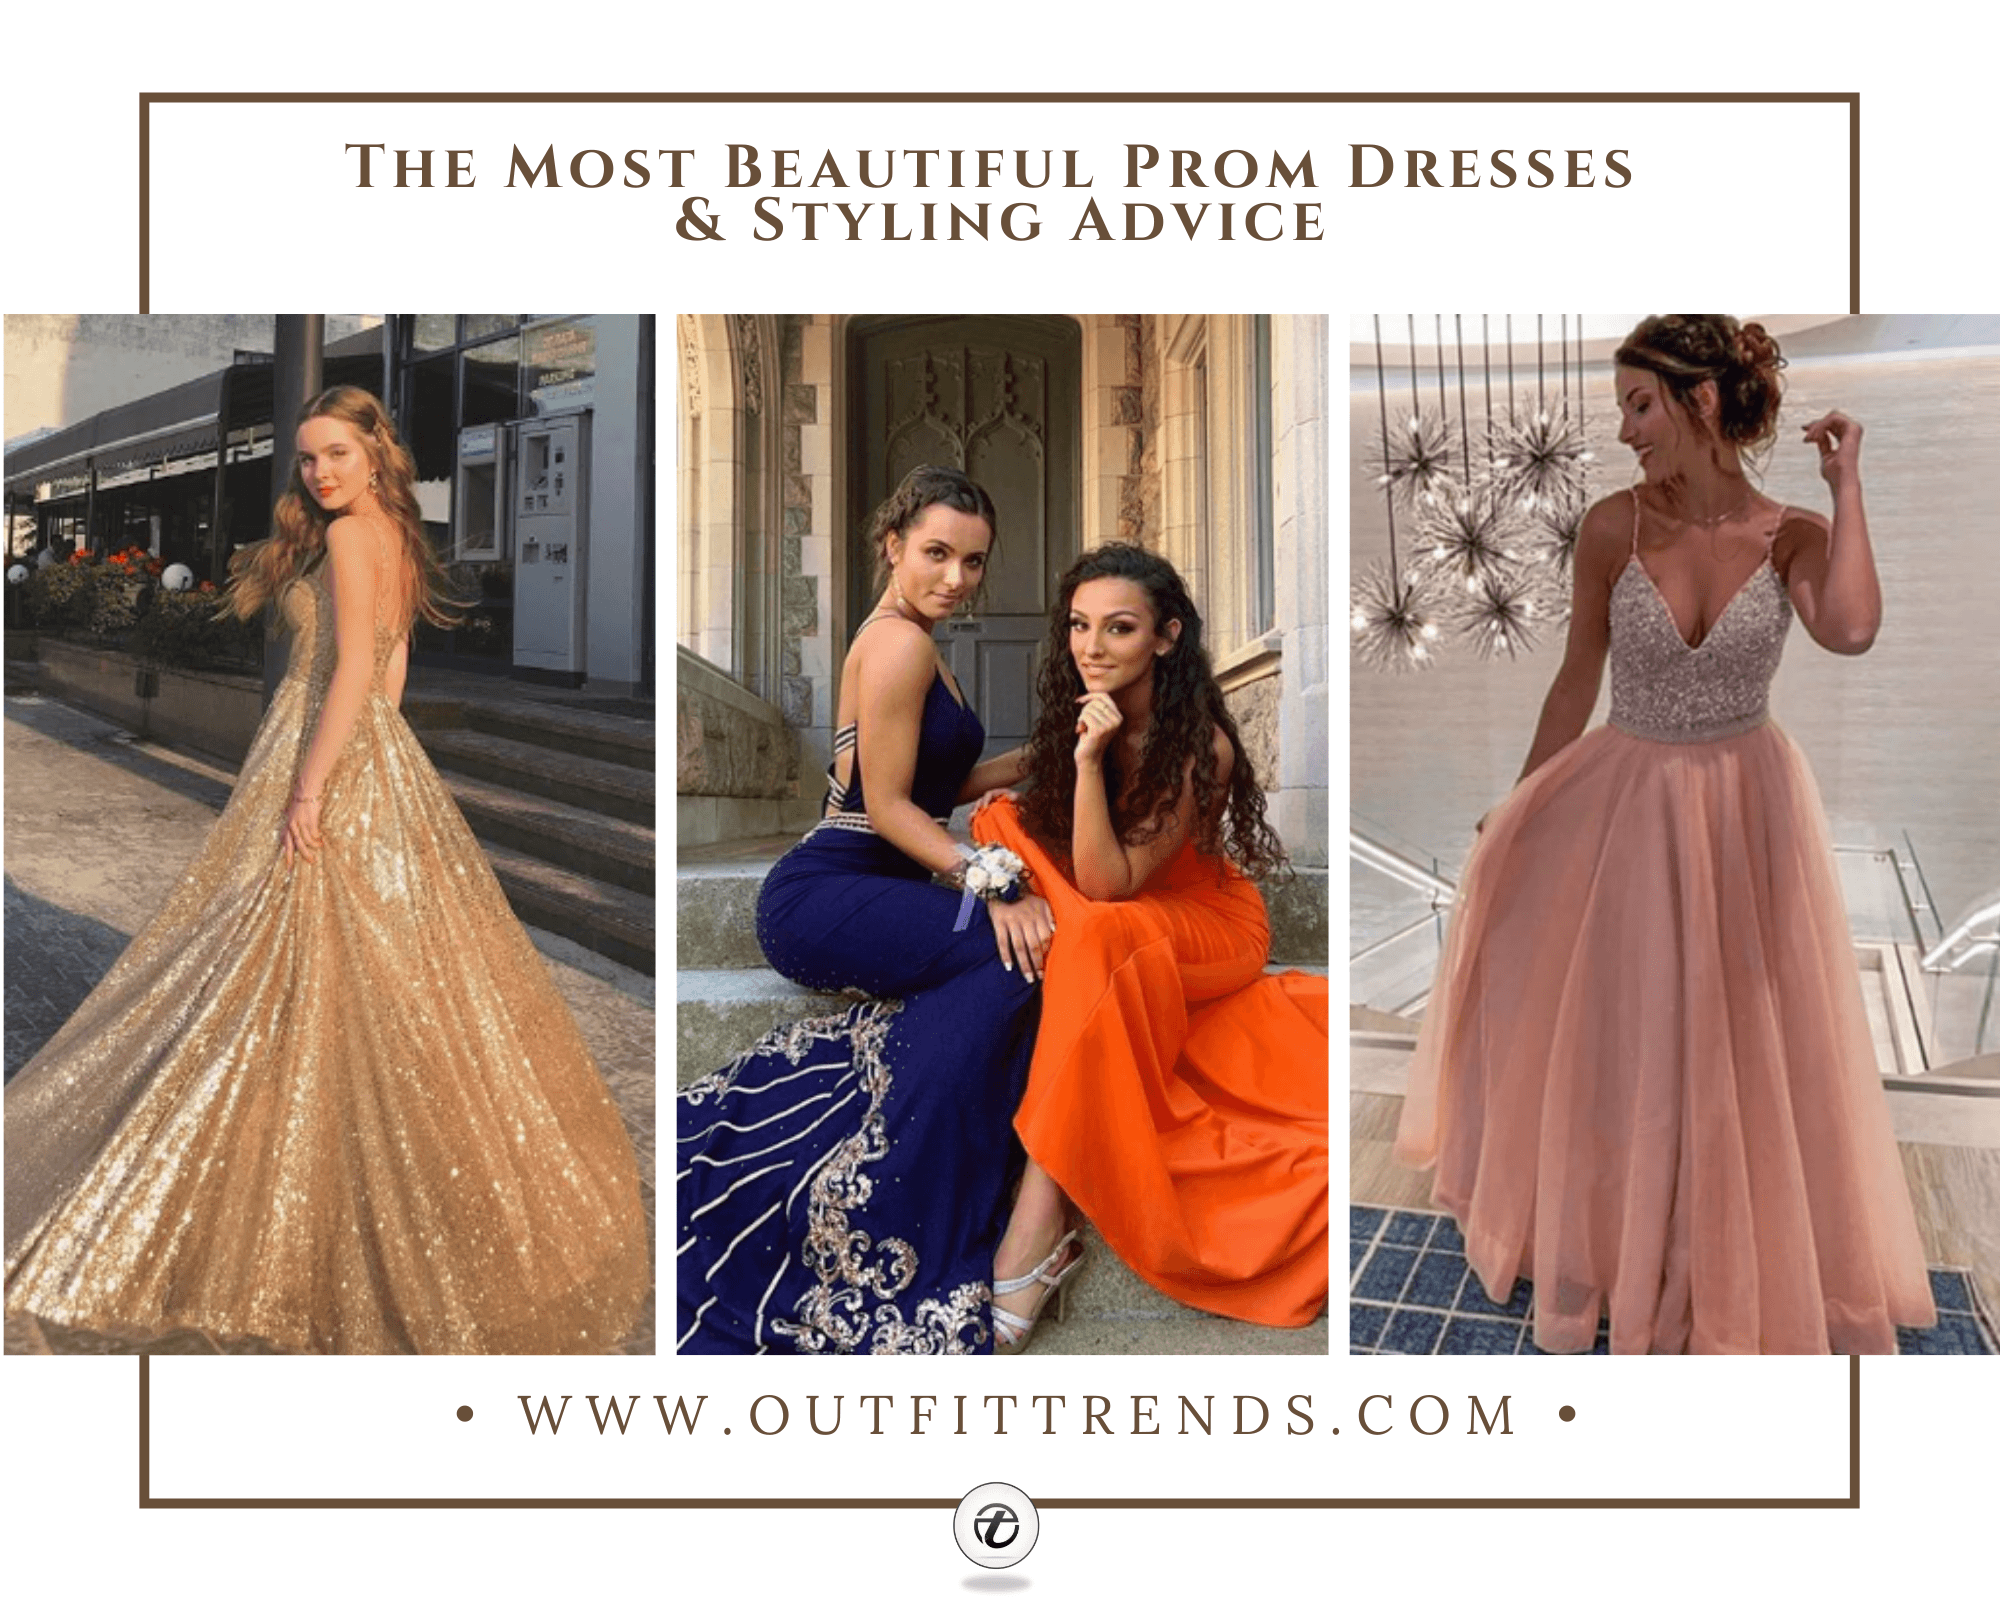 20 Best Prom Outfit Ideas for Teen Girls To Try In 2021